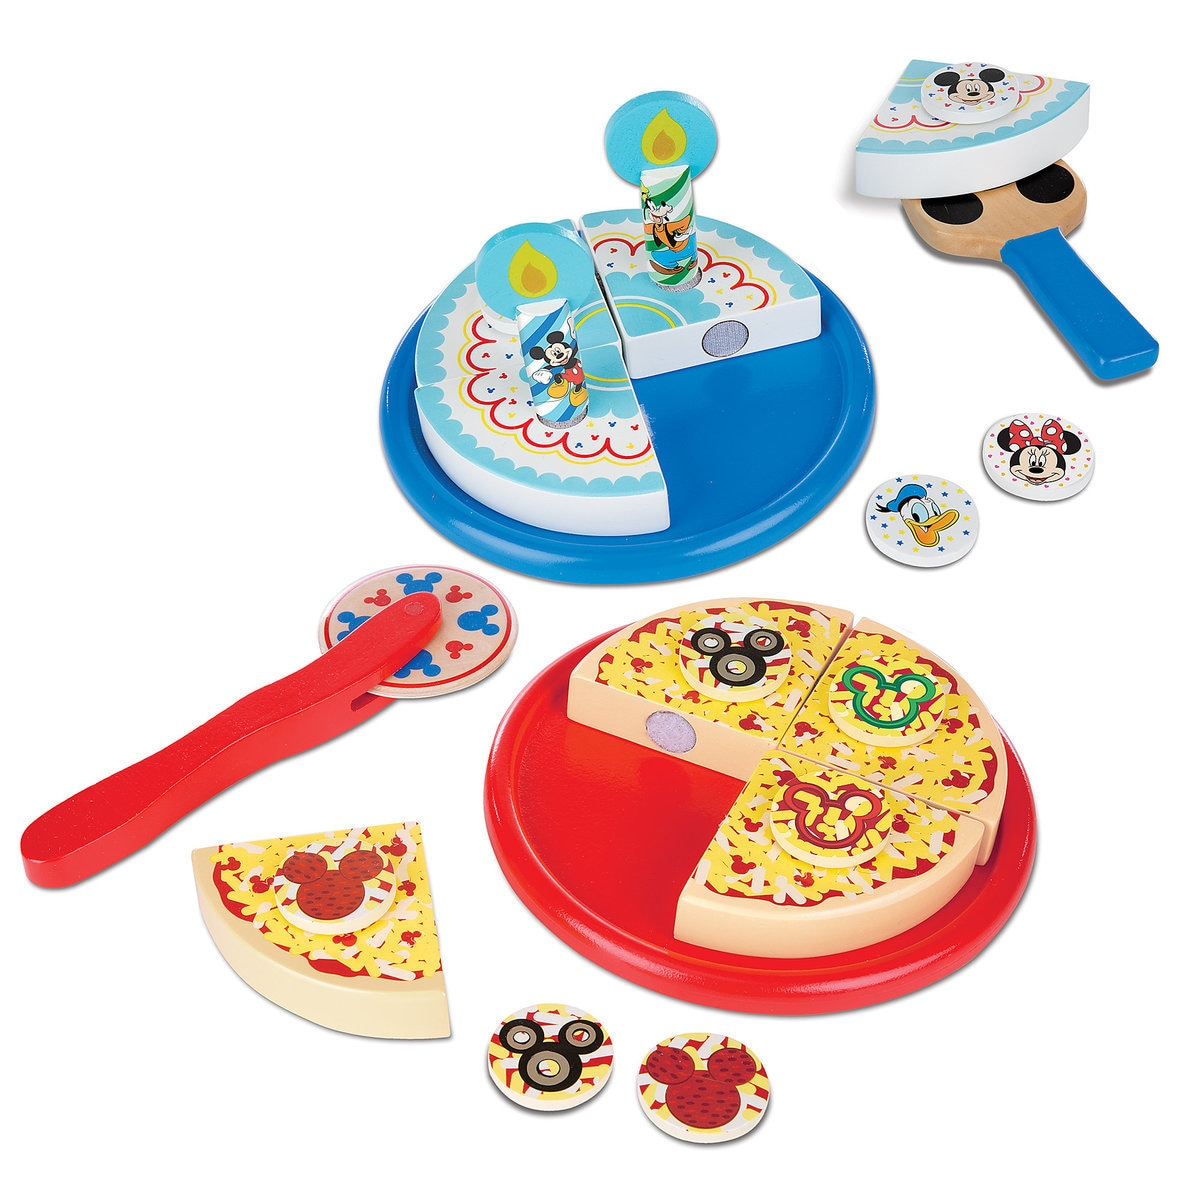 Mickey Mouse Clubhouse Wooden Pizza Birthday Cake Set By Melissa